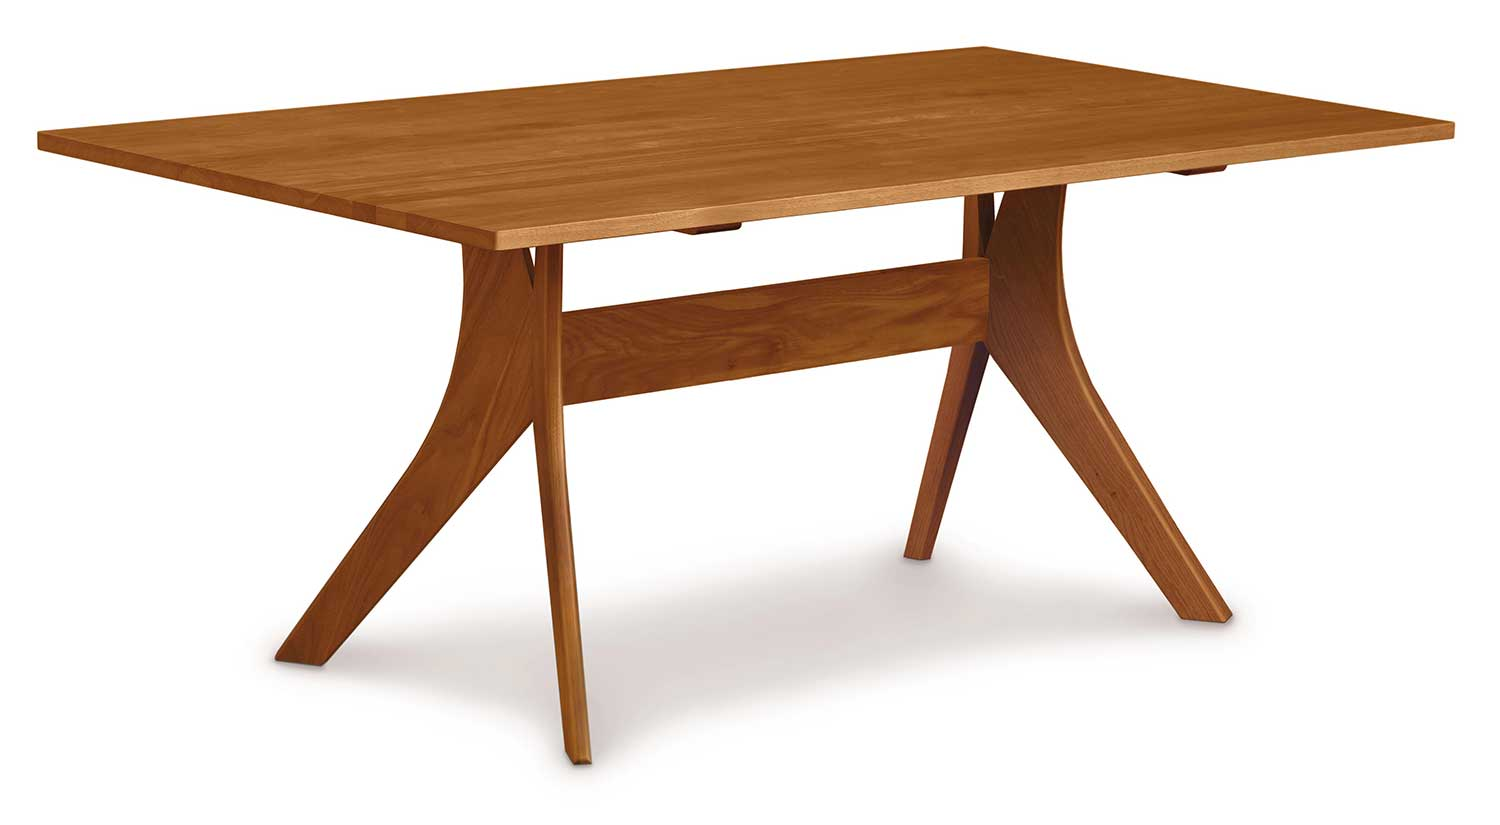 Circle Furniture Audrey Dining Table Fixed Top Table Dining Room Circle Furniture